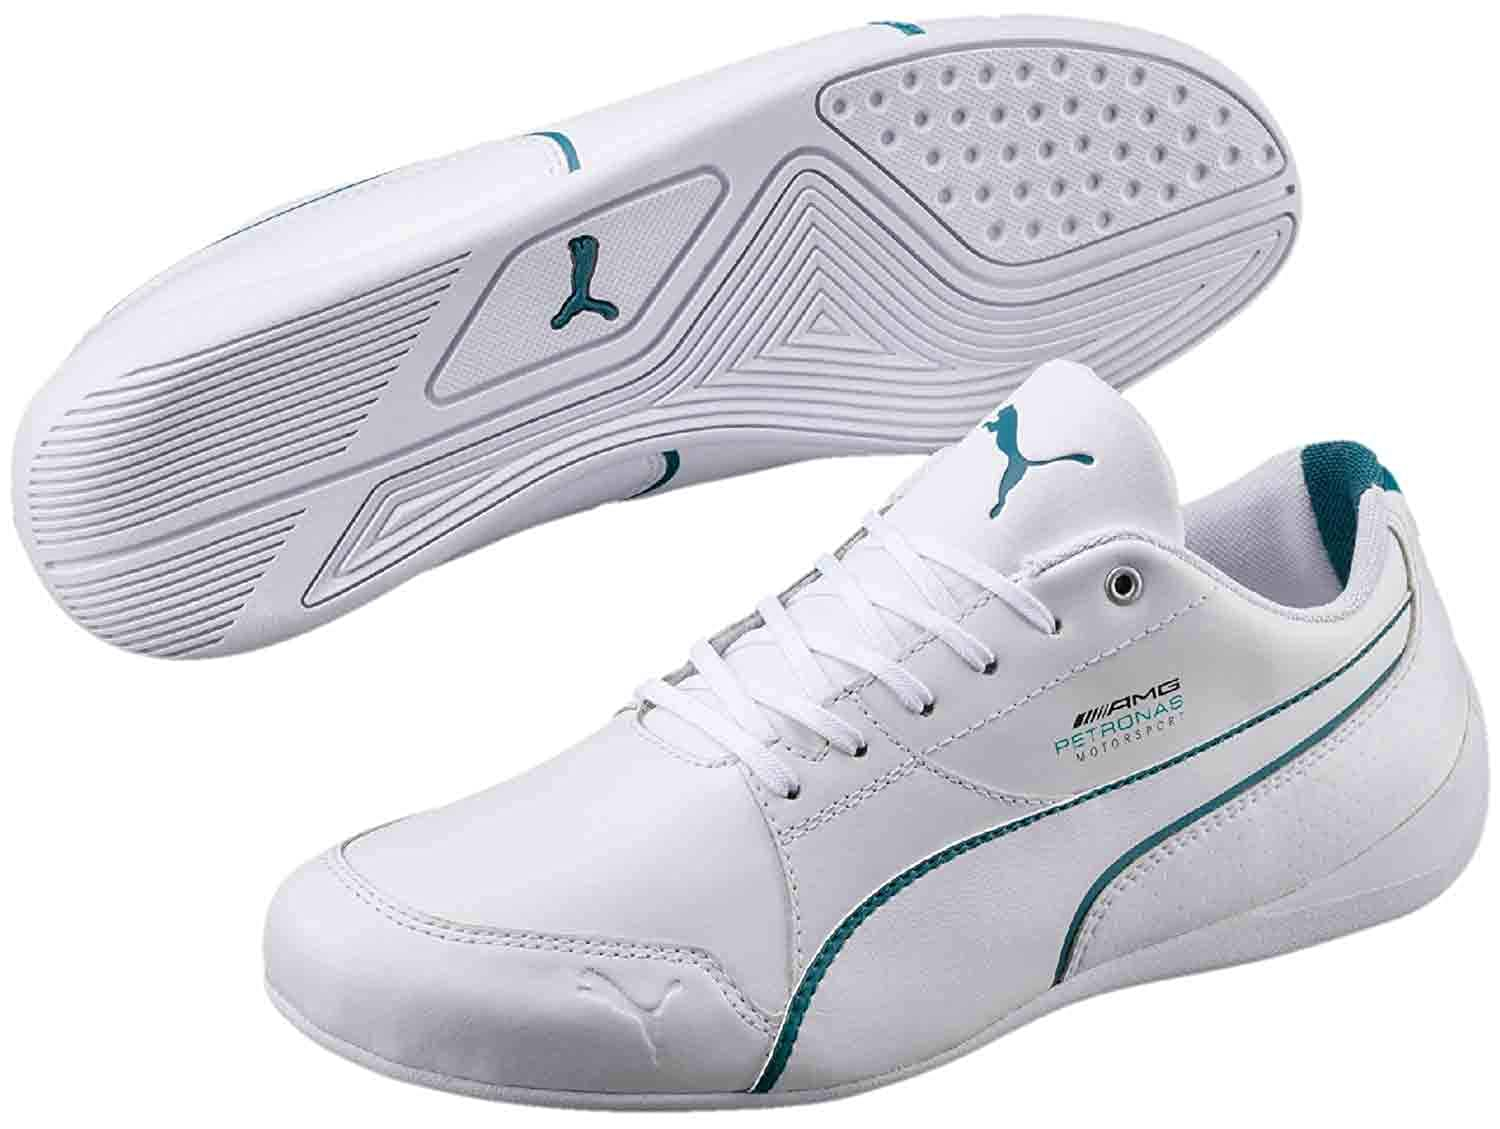 TALLA 43 EU. PUMA Dirft Cat 306150/001 White Turquoise Men's Low Sneaker White